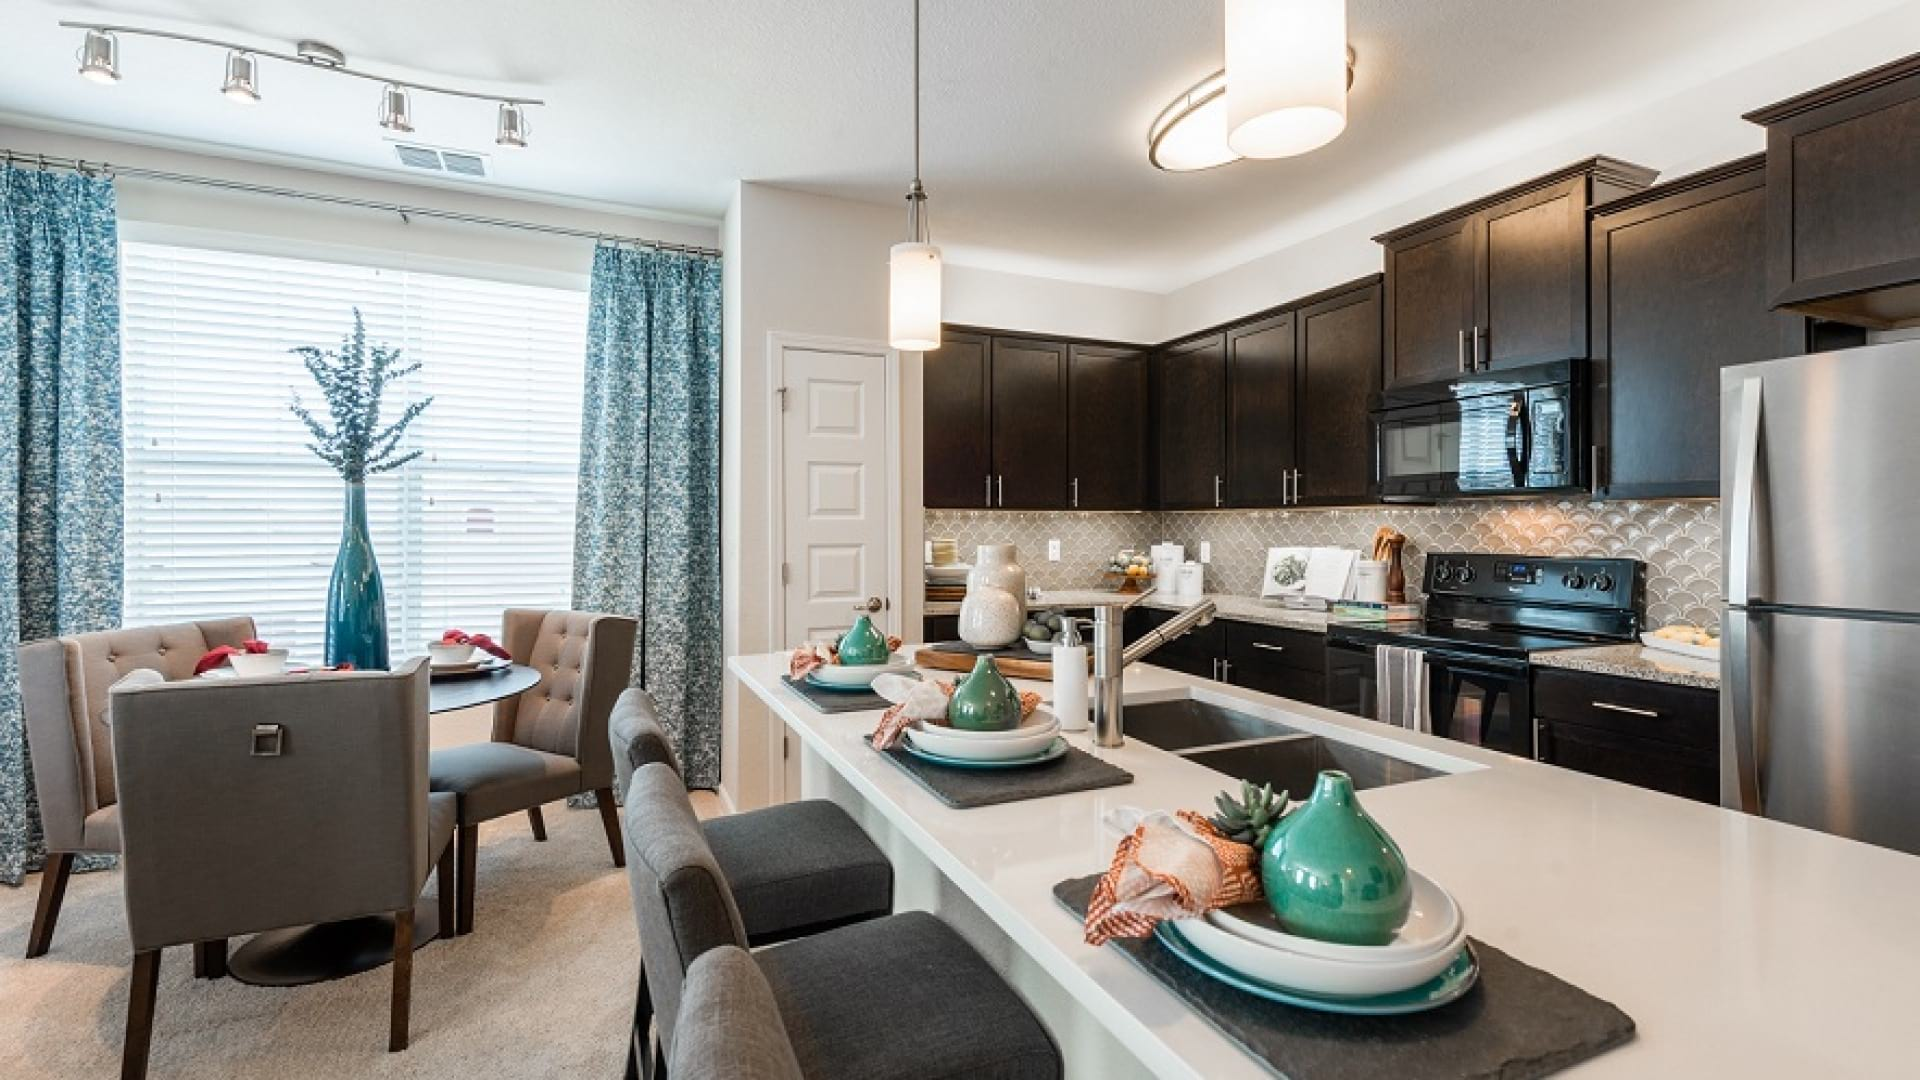 Luxury kitchen island at apartments for rent in Orlando